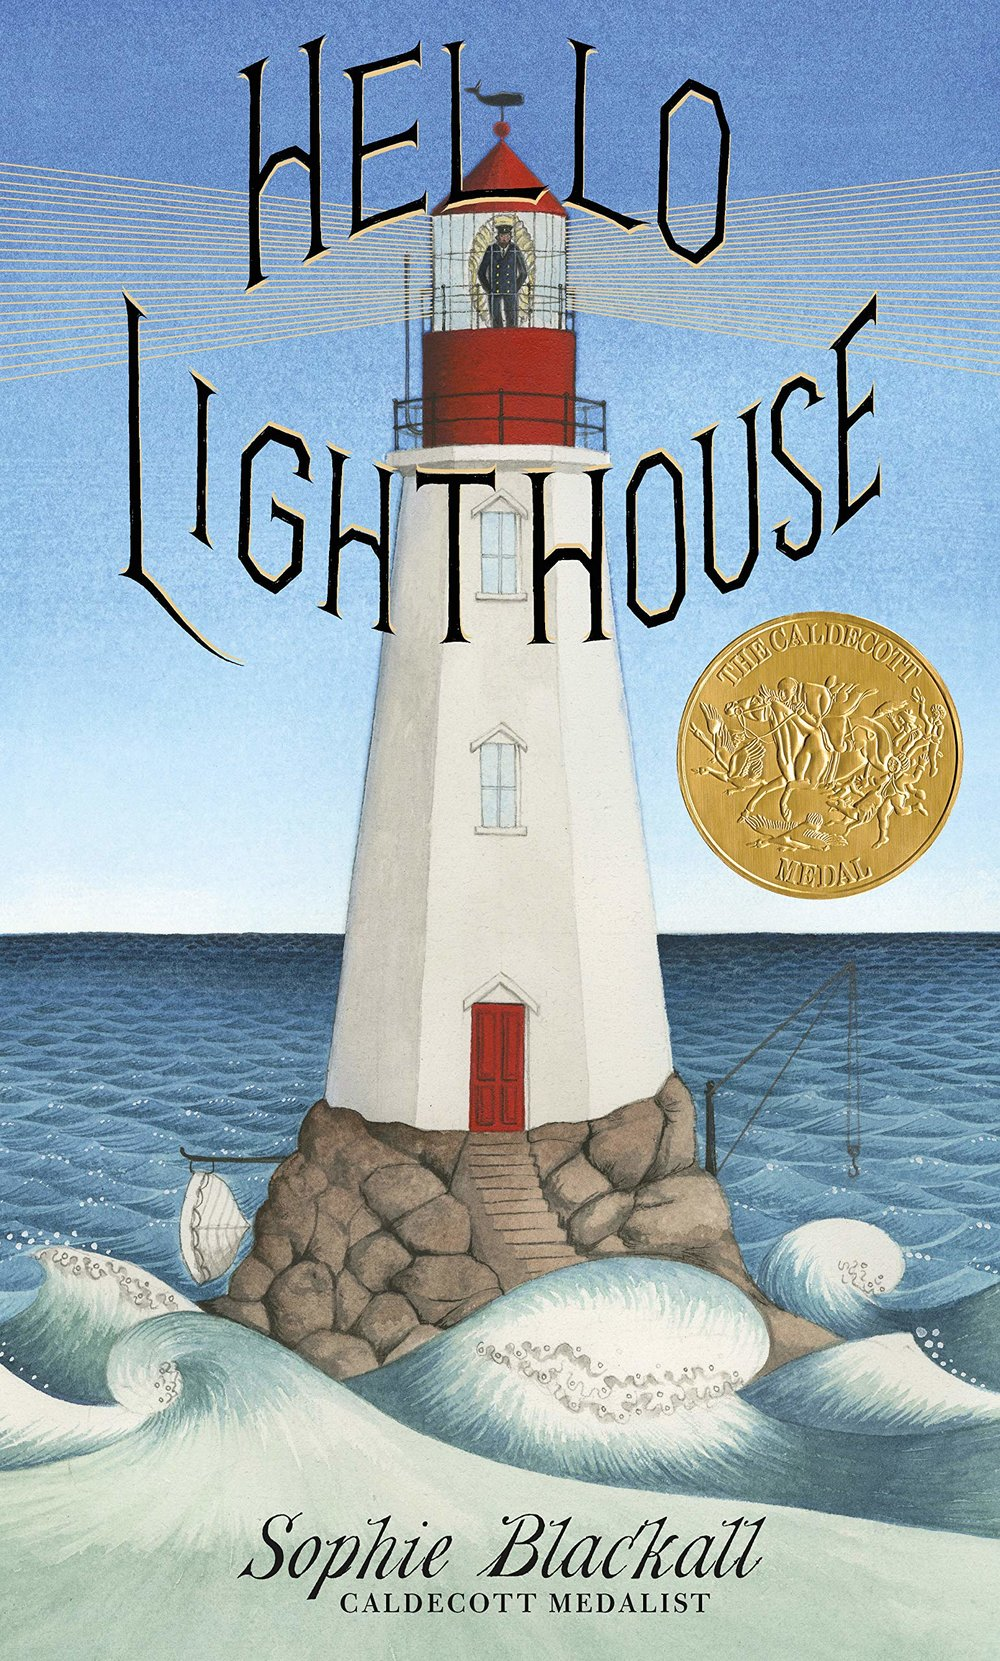 Hello Lighthouse was the official winner this year. The pictures are the kind you want to pour over and sit with before you turn the page. The story is about a lighthouse, its keeper and the passage of time. A worthy winner that you will want to read. -